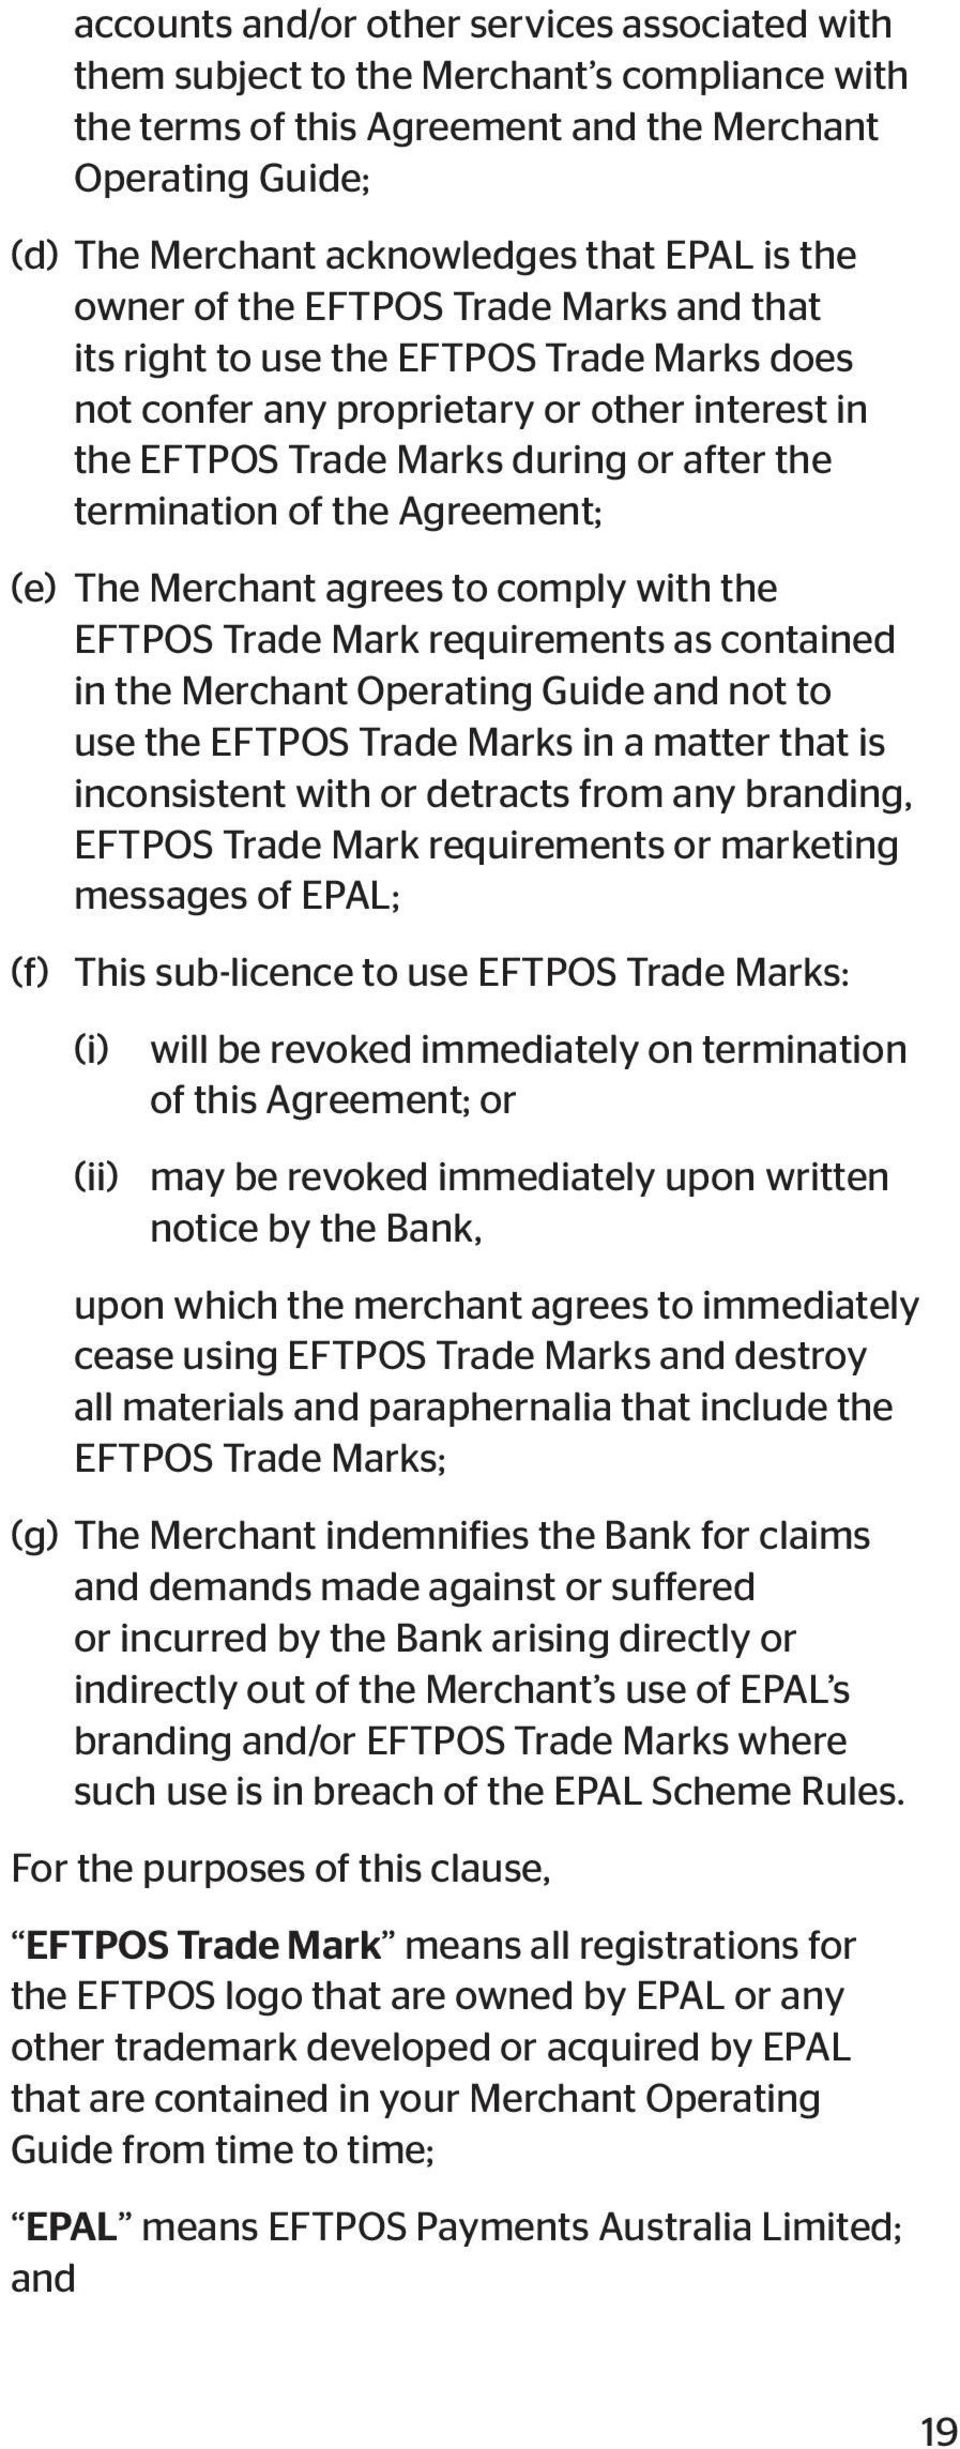 Agreement; (e) The Merchant agrees to comply with the EFTPOS Trade Mark requirements as contained in the Merchant Operating Guide and not to use the EFTPOS Trade Marks in a matter that is